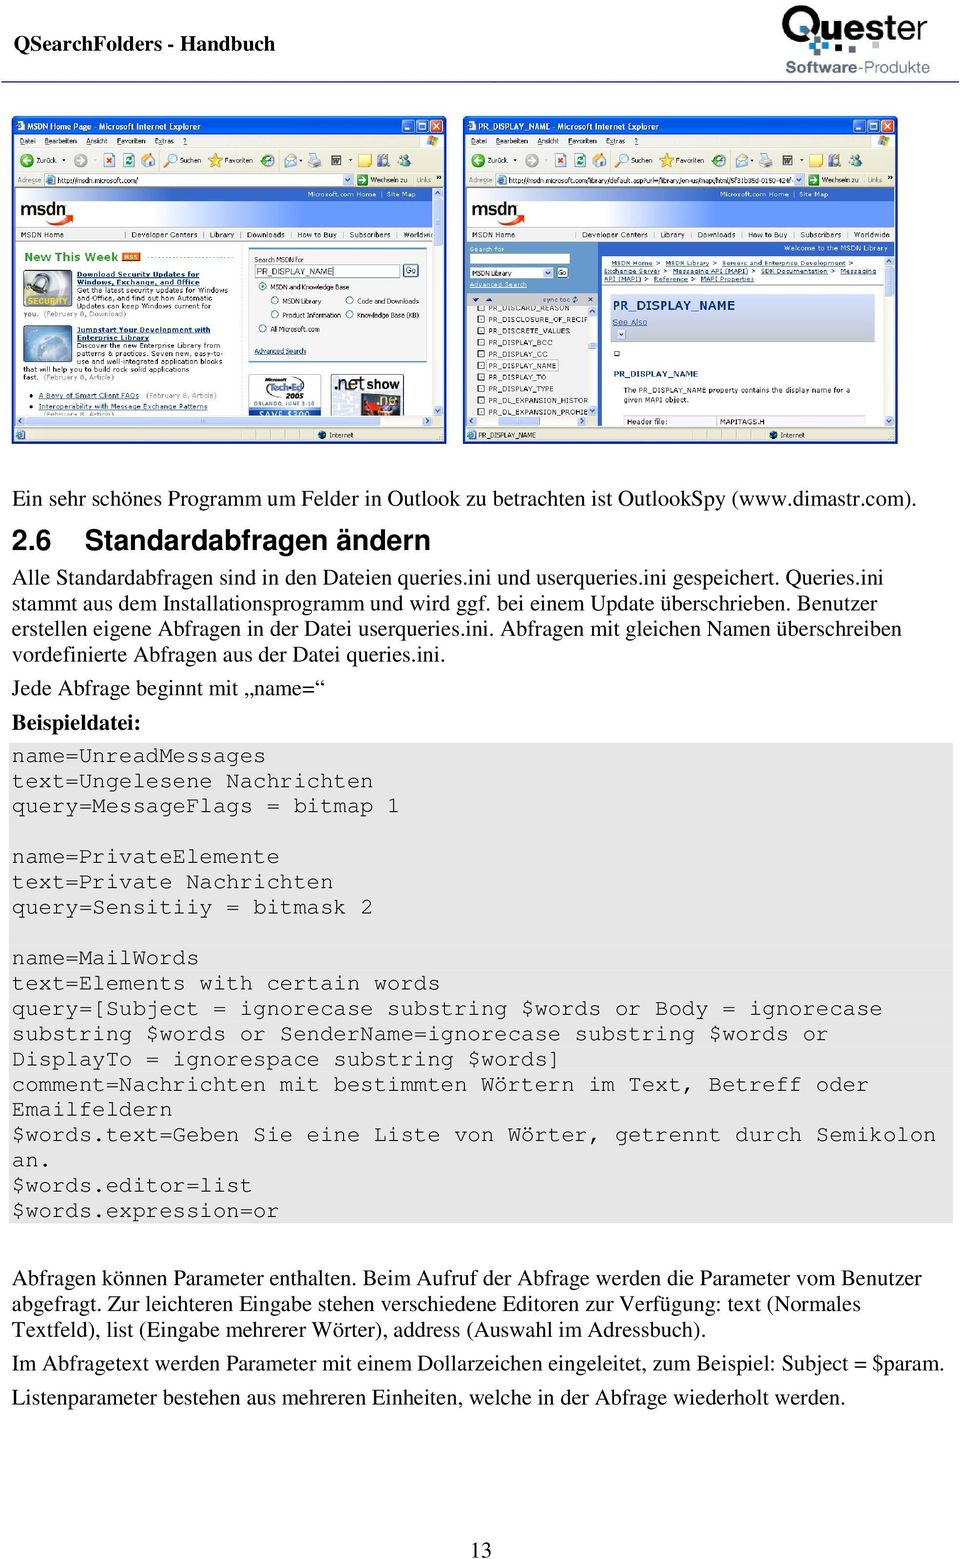 ini. Jede Abfrage beginnt mit name= Beispieldatei: name=unreadmessages text=ungelesene Nachrichten query=messageflags = bitmap 1 name=privateelemente text=private Nachrichten query=sensitiiy =